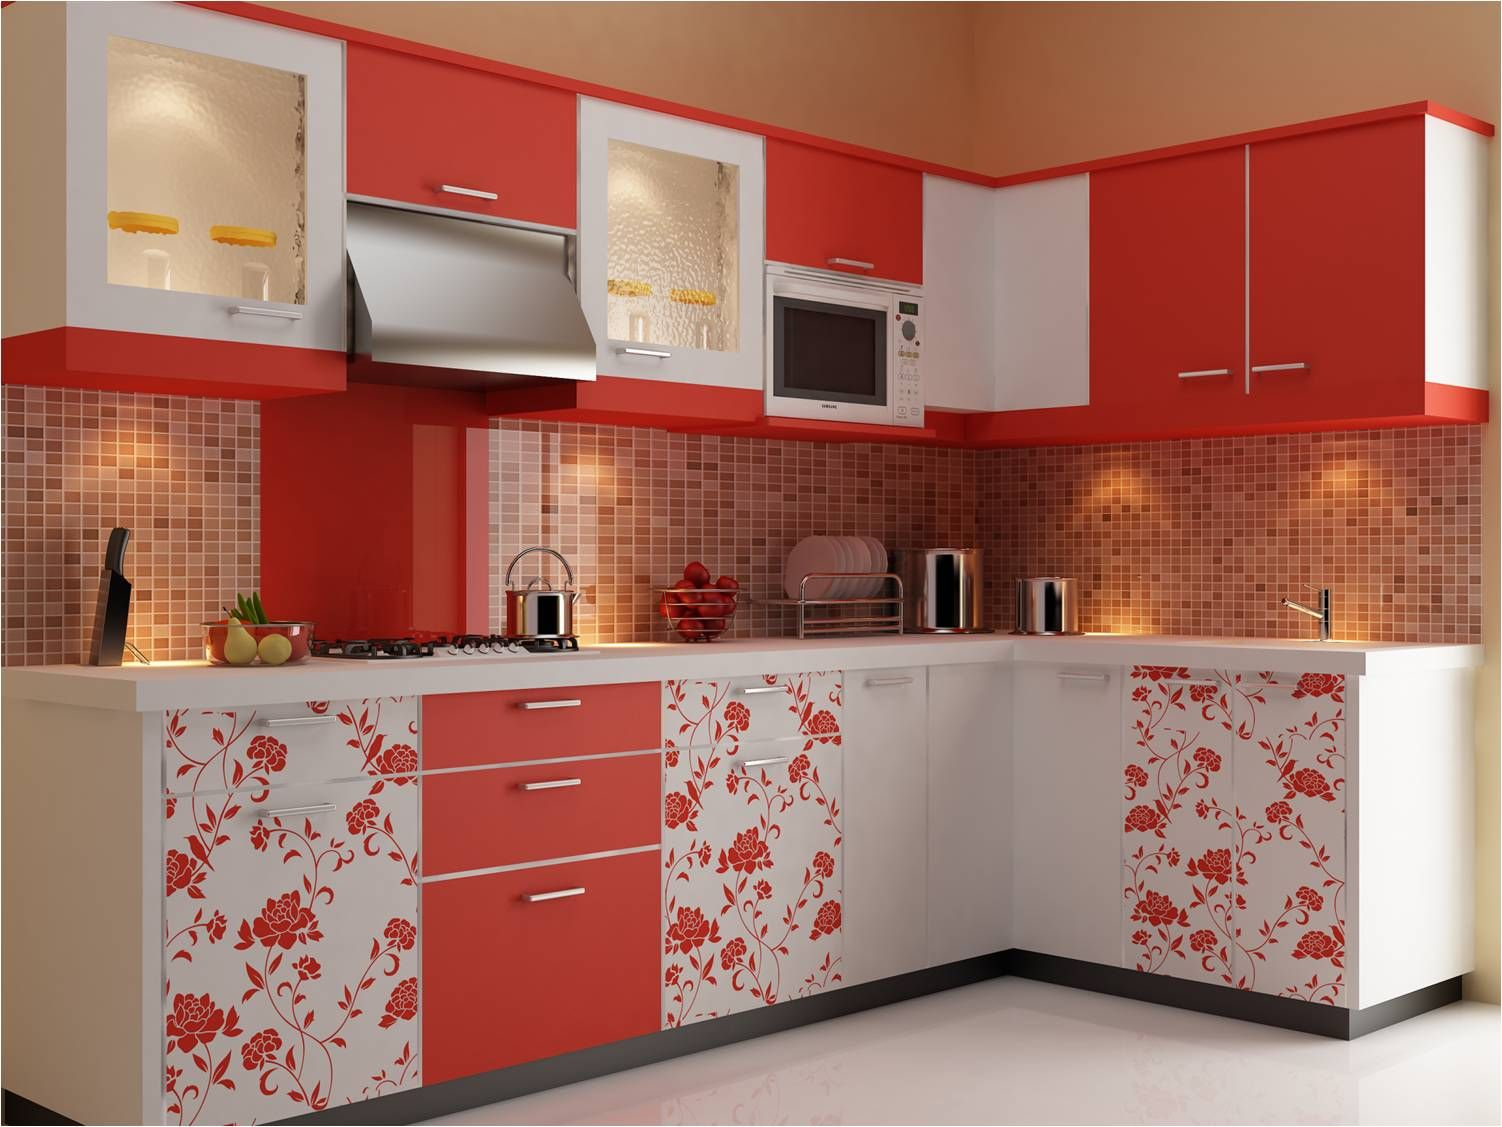 Modular Kitchen Upper Cabinets Innovative Small Modular Kitchen Decor Inspirations Exquisite